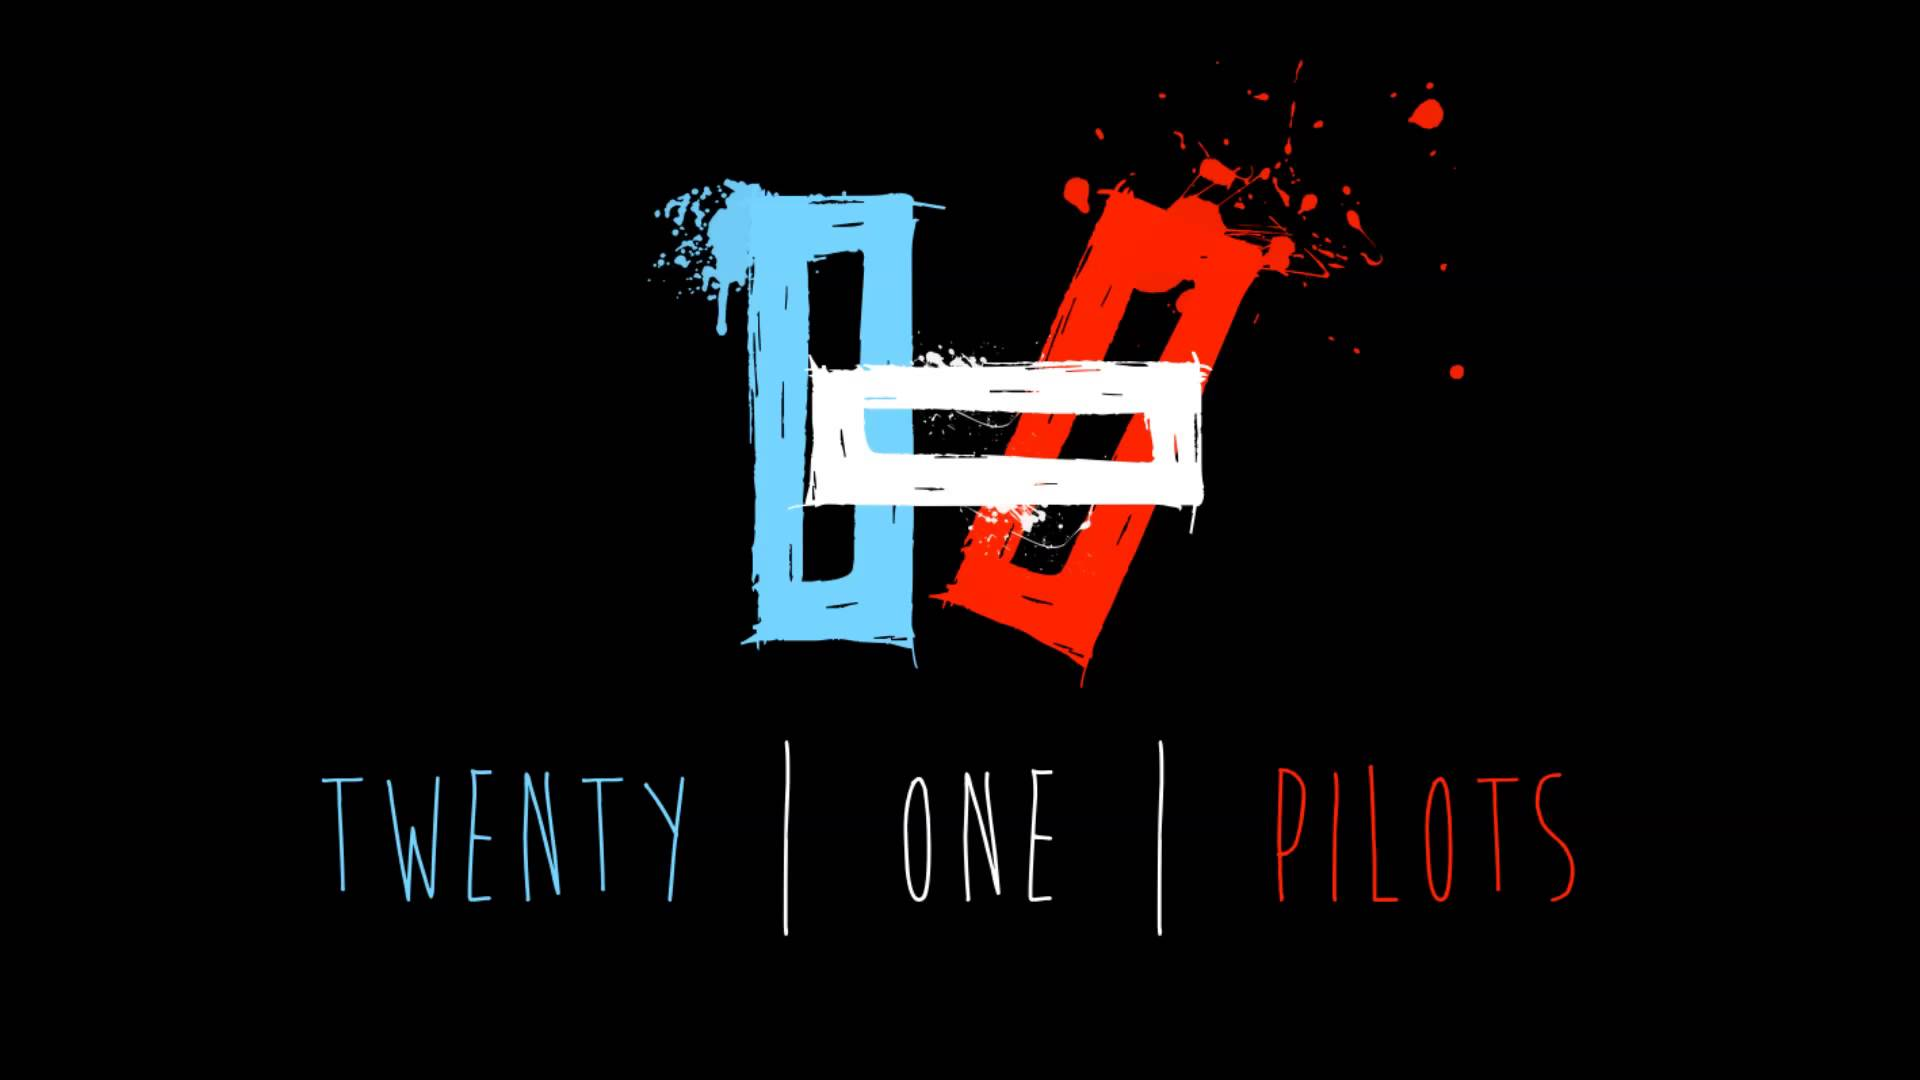 Twenty one pilots hd wallpapers for Twenty one pilots